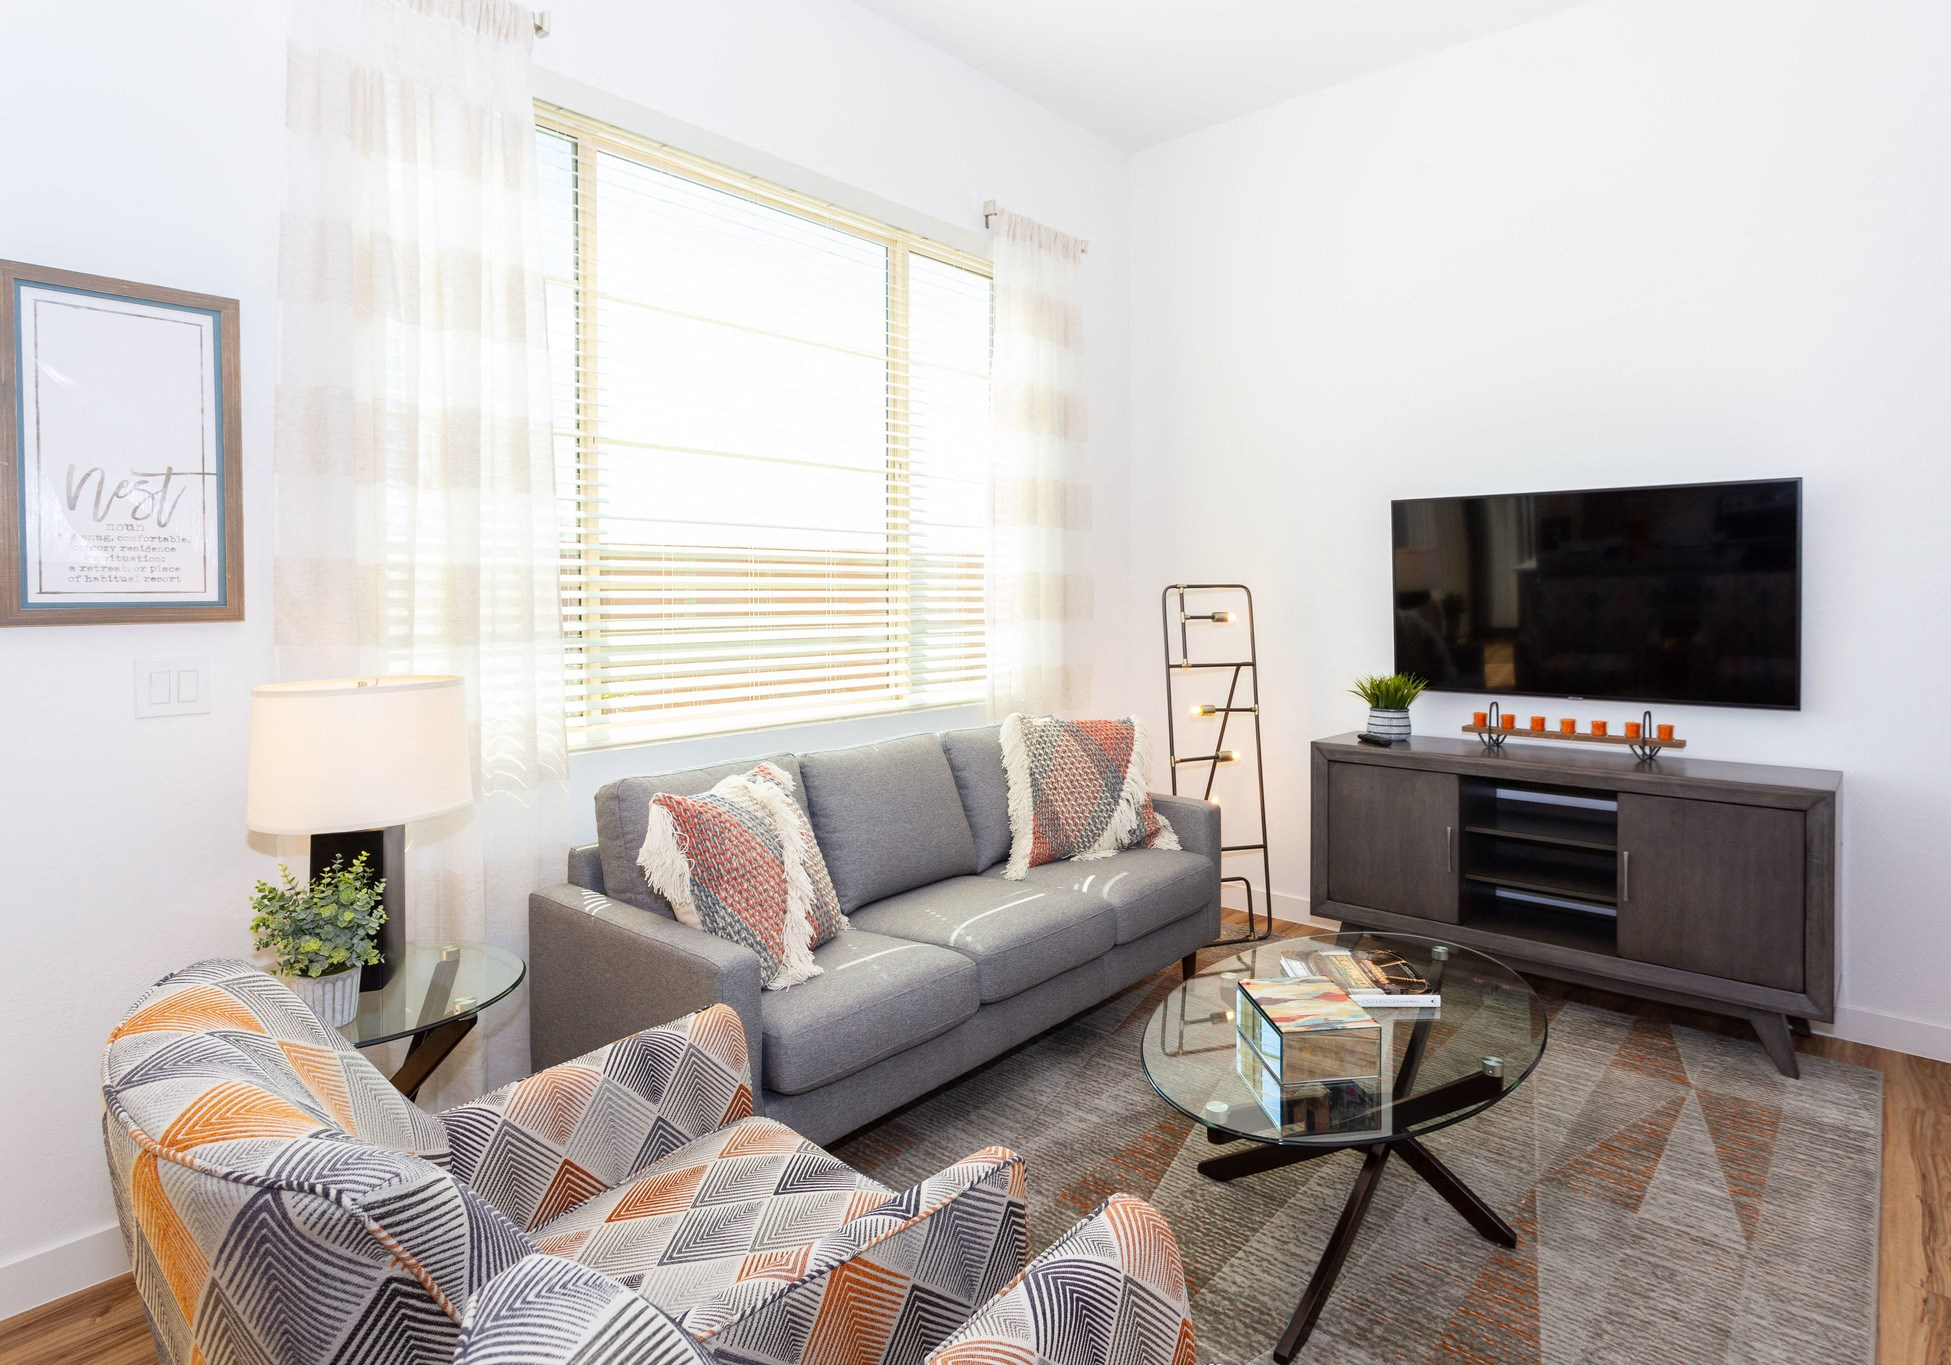 Apartments for Rent in Mesa, AZ - Hampton East Naturally Lit Living Room with Hardwood-Style Plank Flooring and Large Window